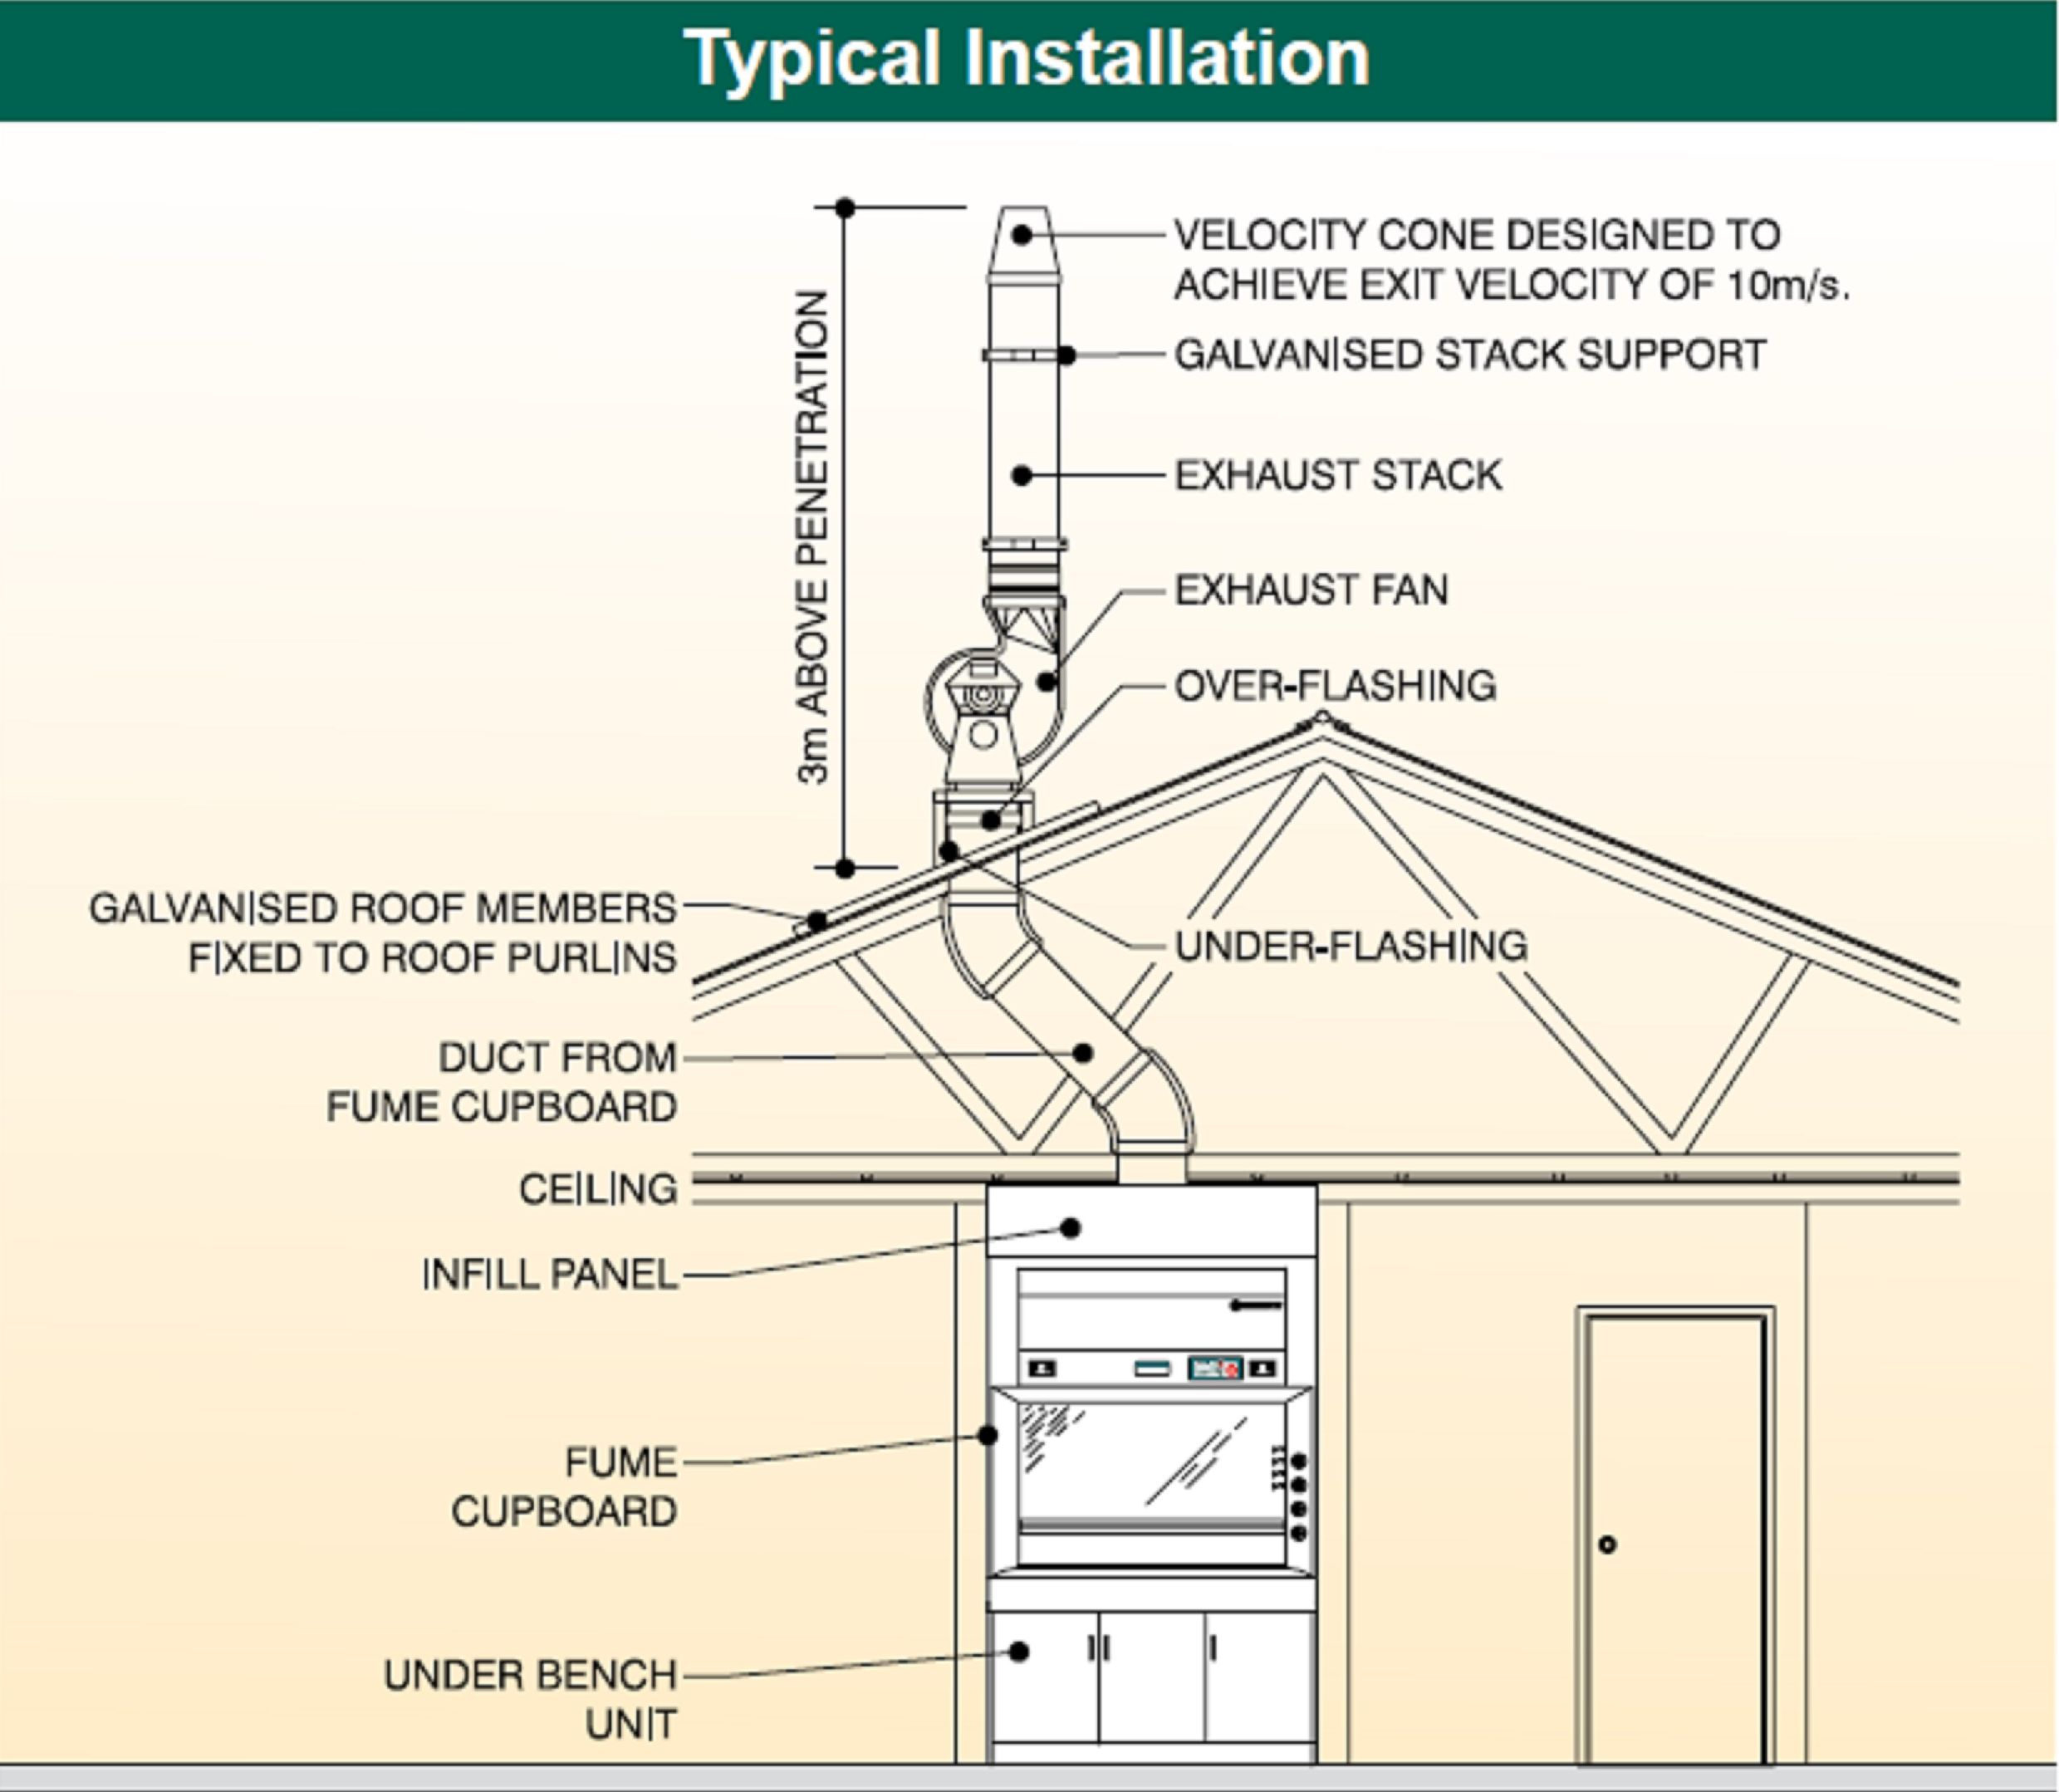 typical installation (page 2)